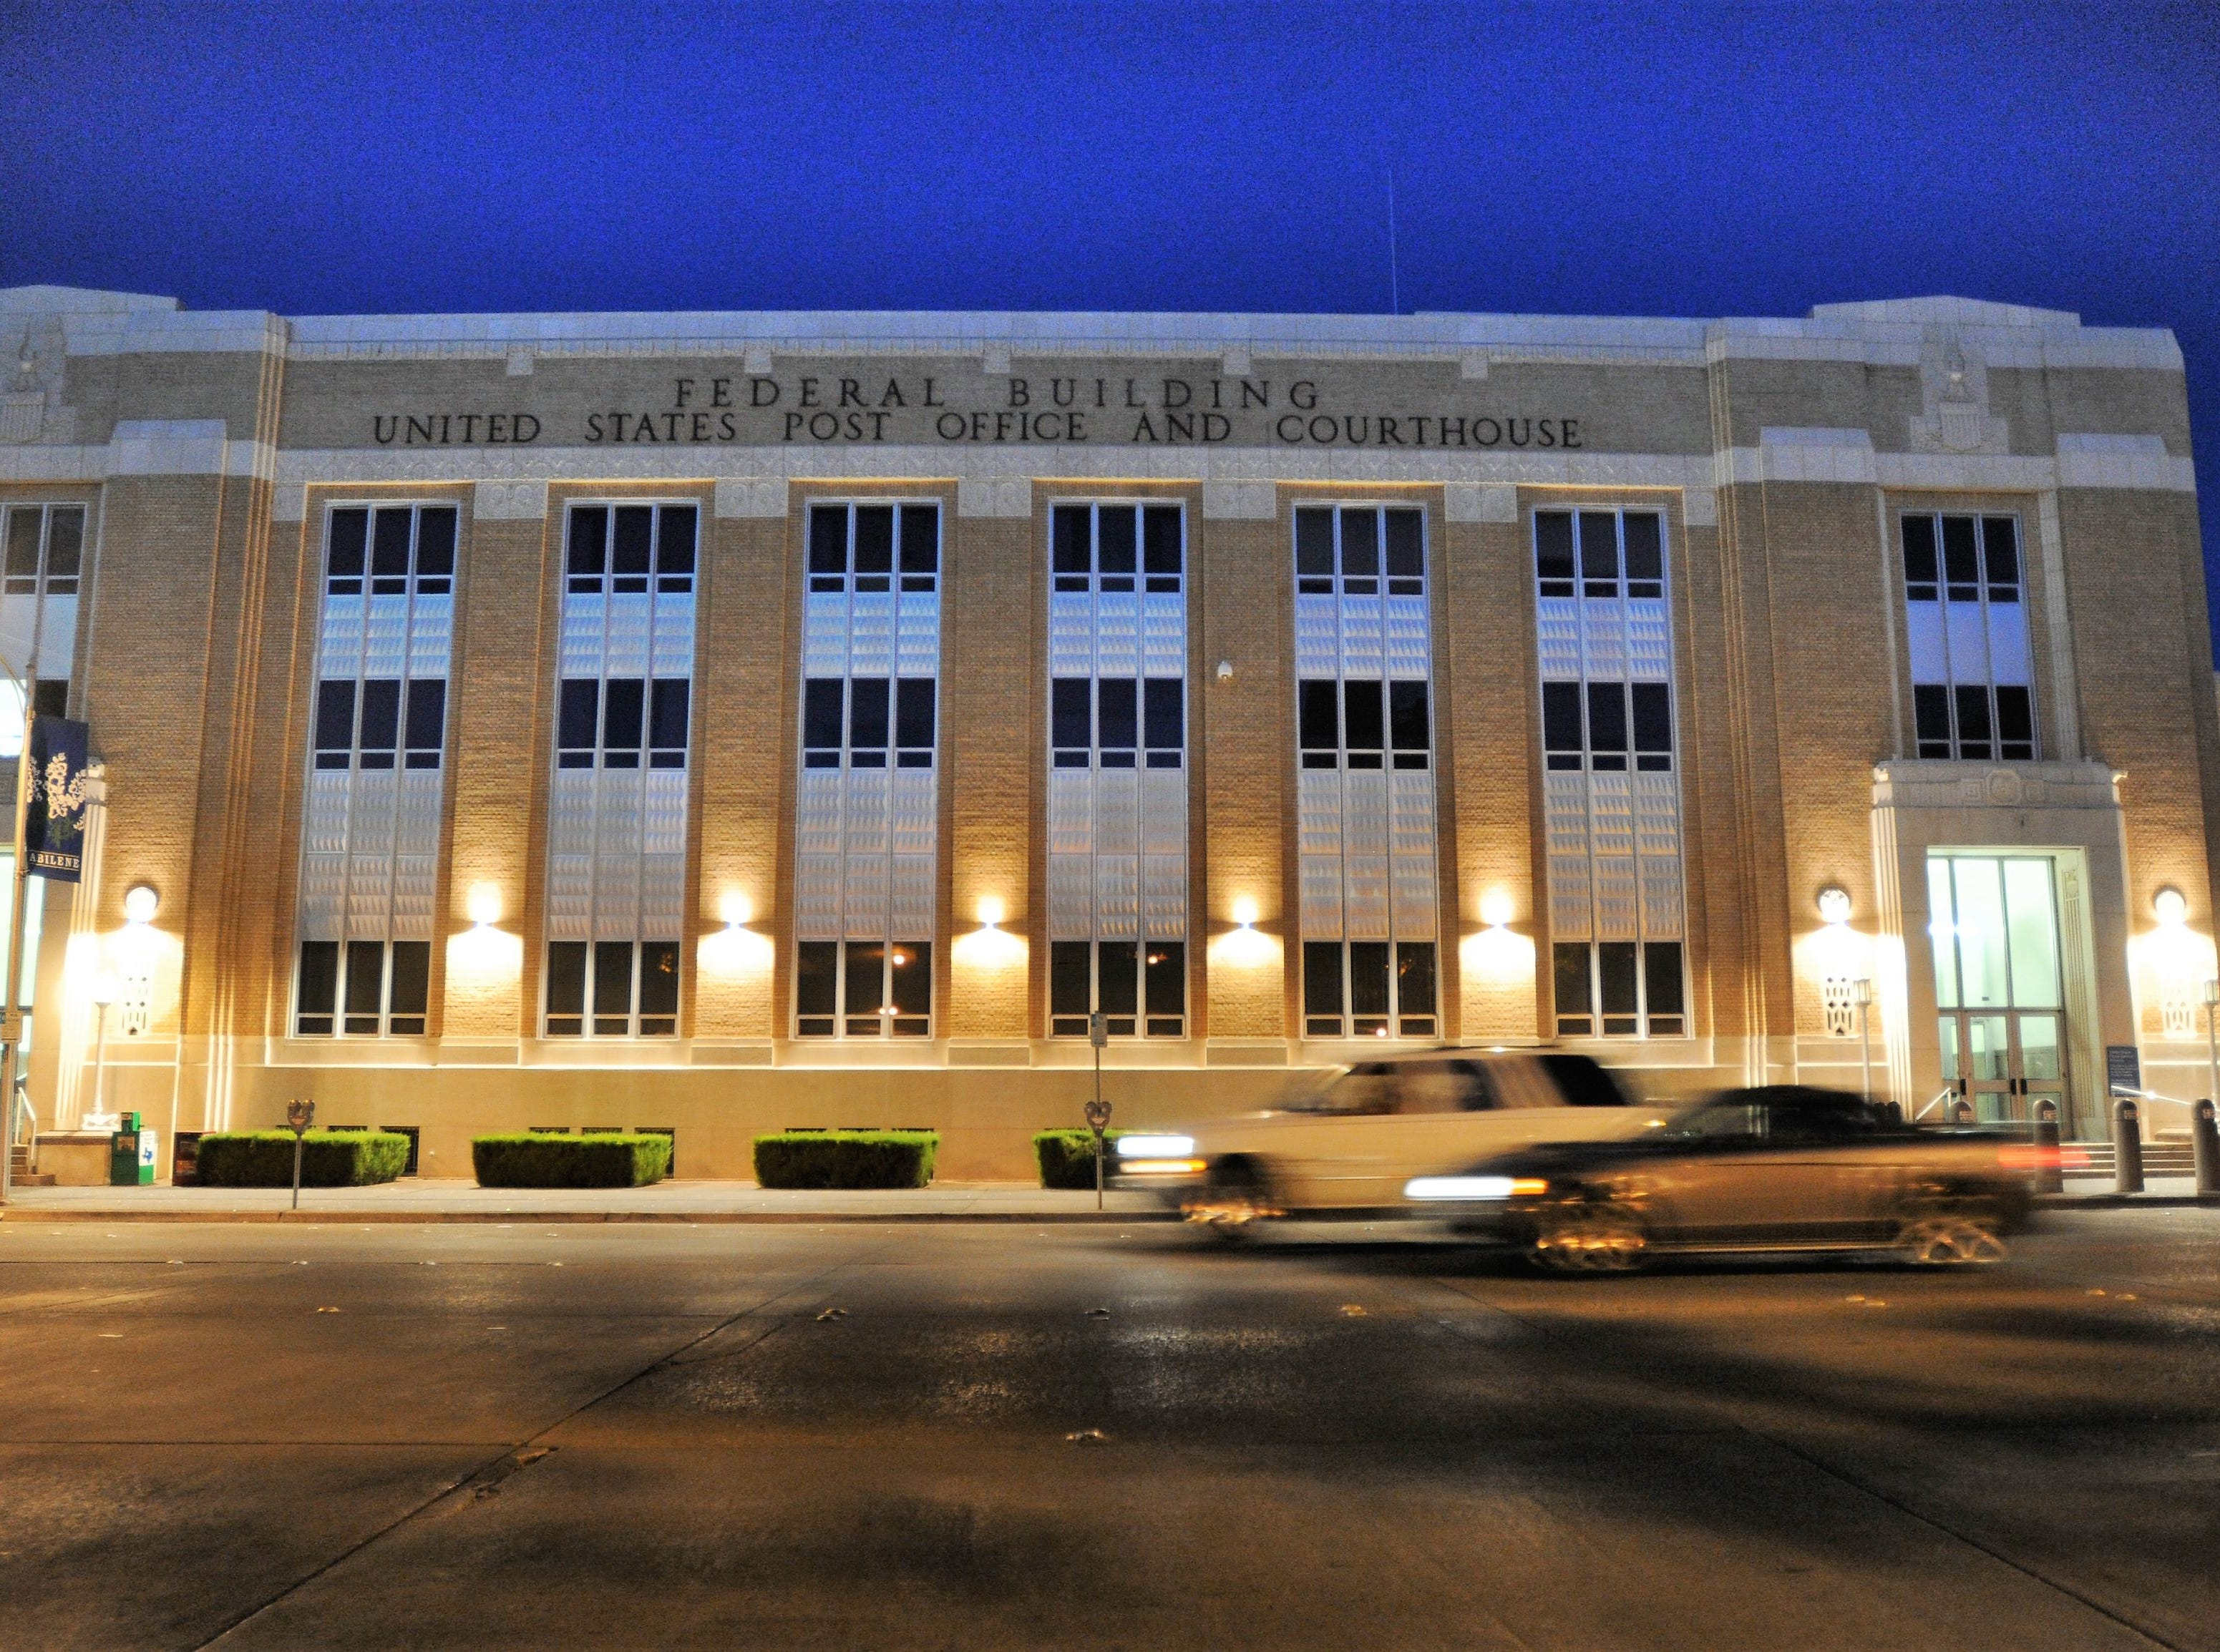 The post office building downtown was designed by David Castle.